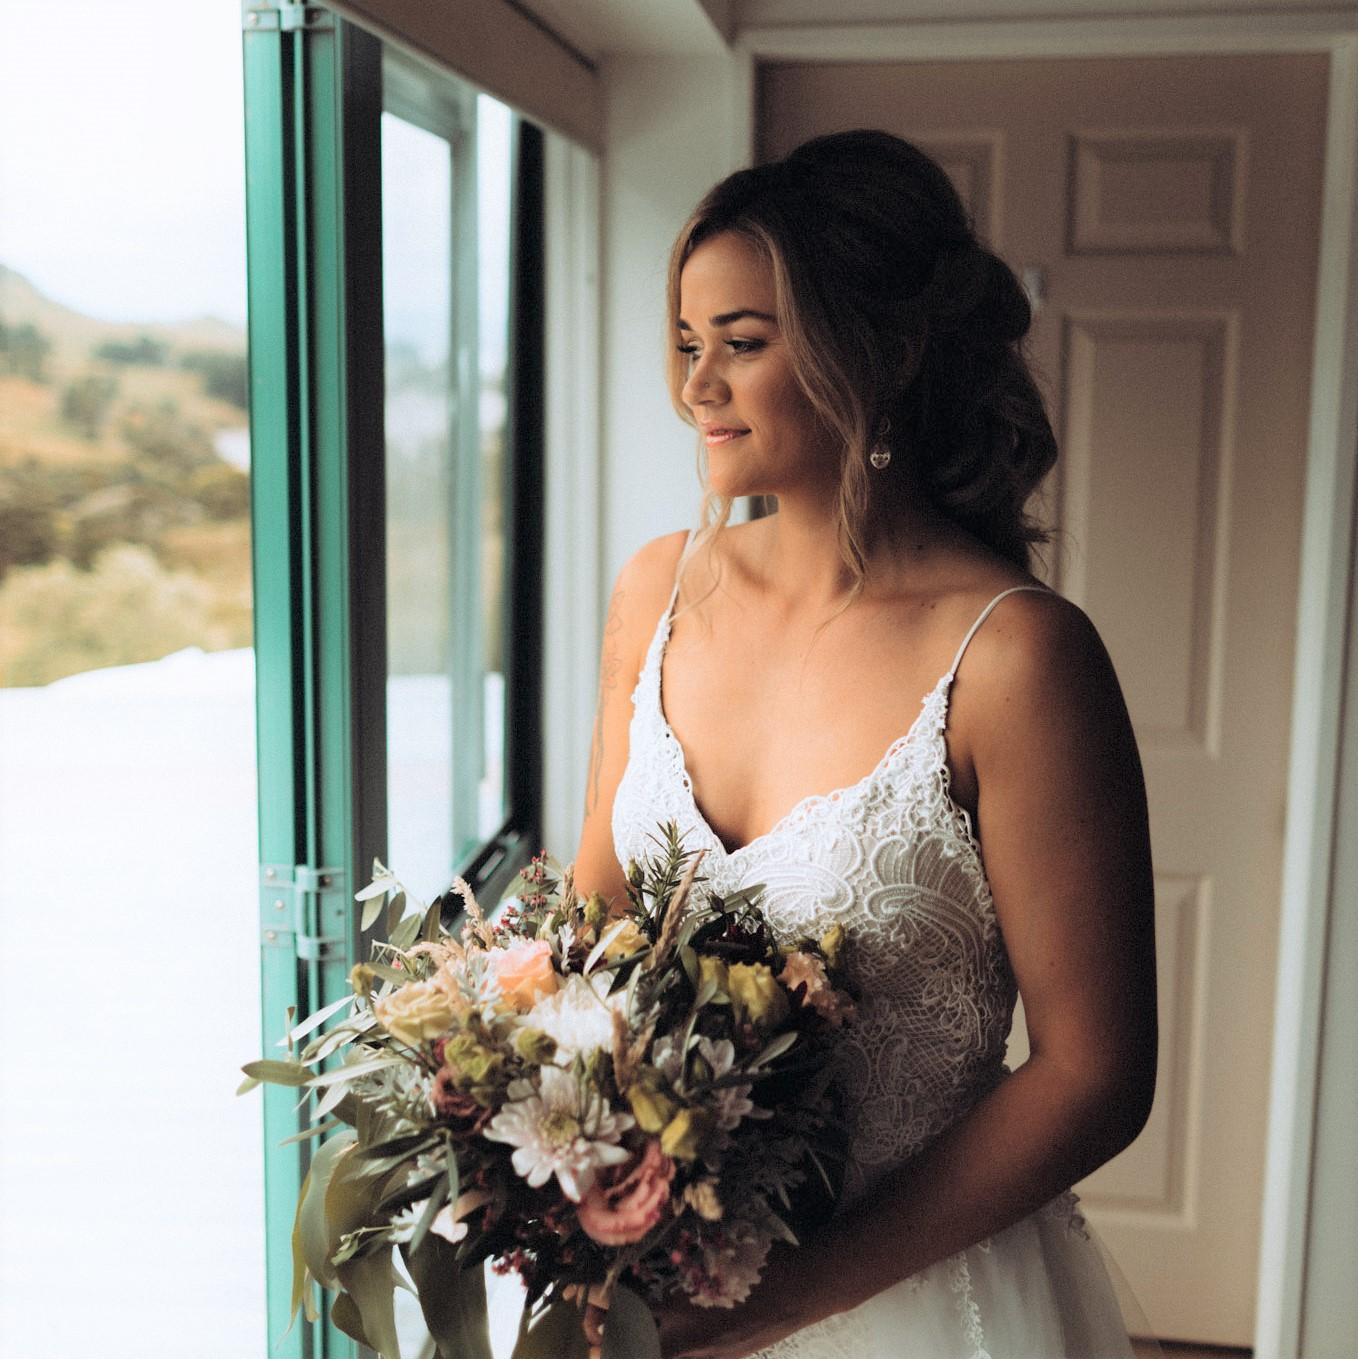 Dewy skin-bronzed and peach toned natural makeup with lashes-rustic style wedding